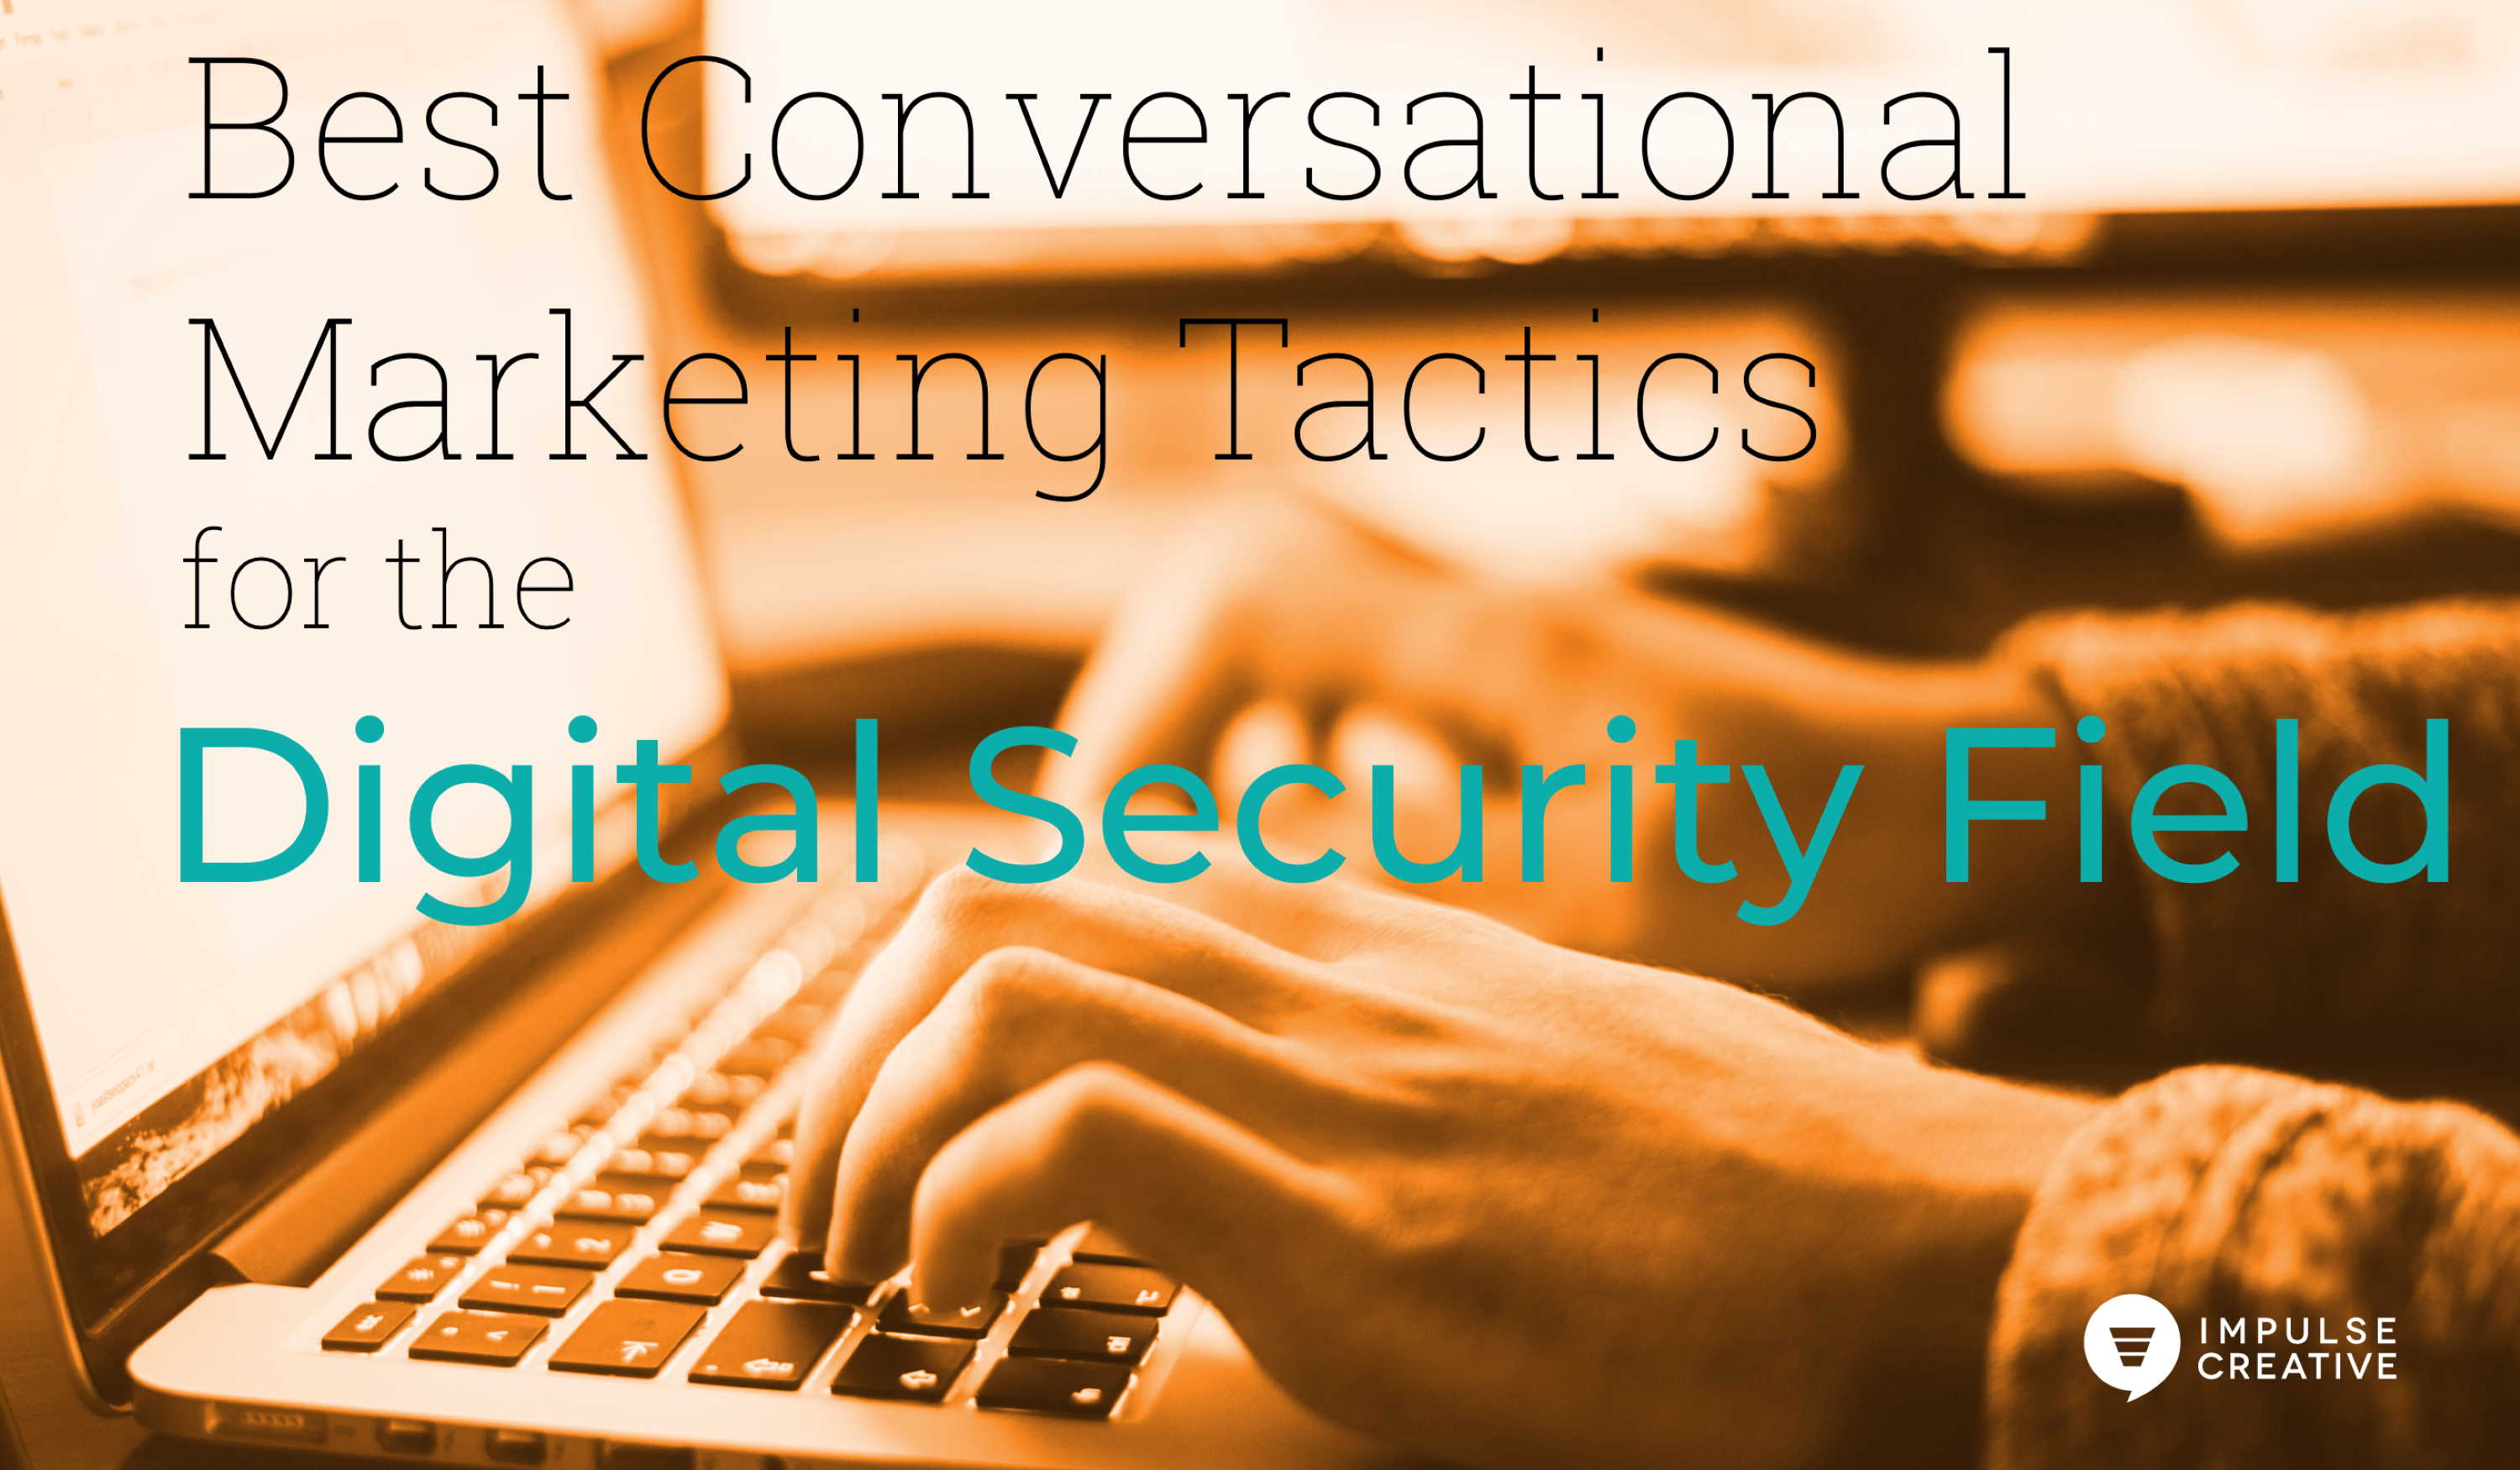 Best Conversational Marketing Tactics for the Digital Security Field